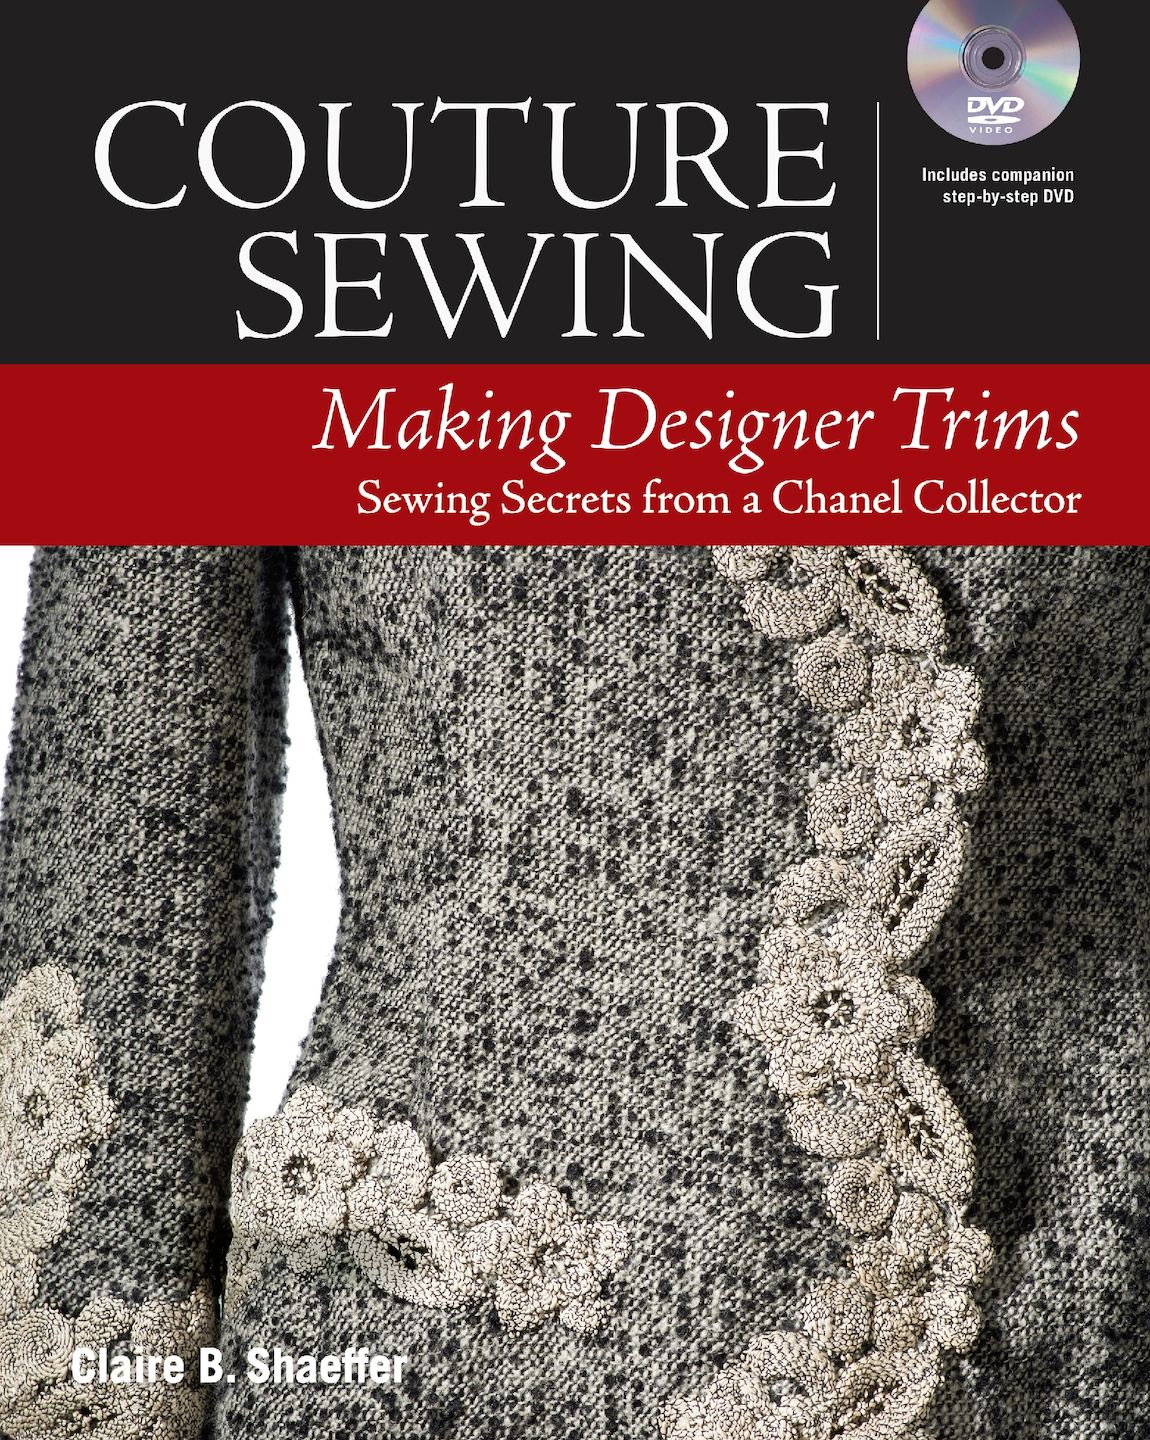 071570 Couture Sewing: Making Designer Trims